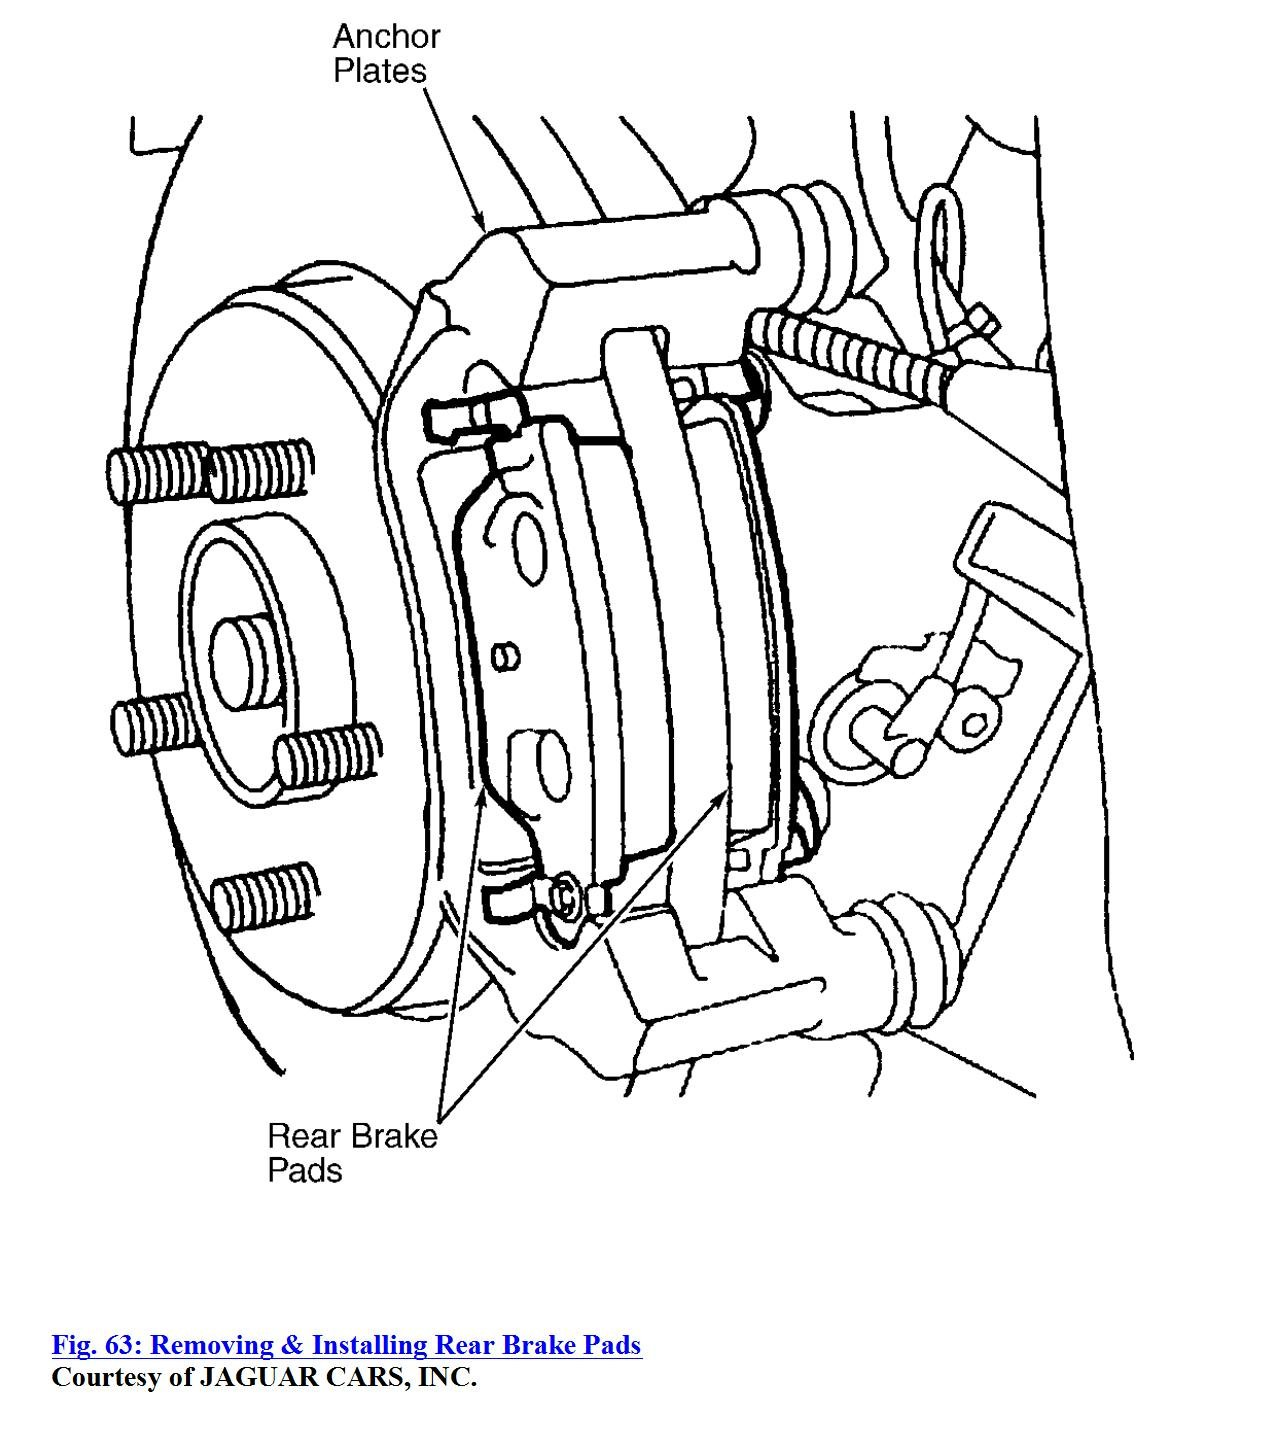 Wiring Diagrams Ford F 150 moreover 2008 Bmw 1200 Wiring Diagram besides Showthread besides 2007 Street Glide Handlebar Switches Wiring Diagram as well Wiring Diagram On 1985 Harley Softail. on 2008 harley davidson sportster 1200